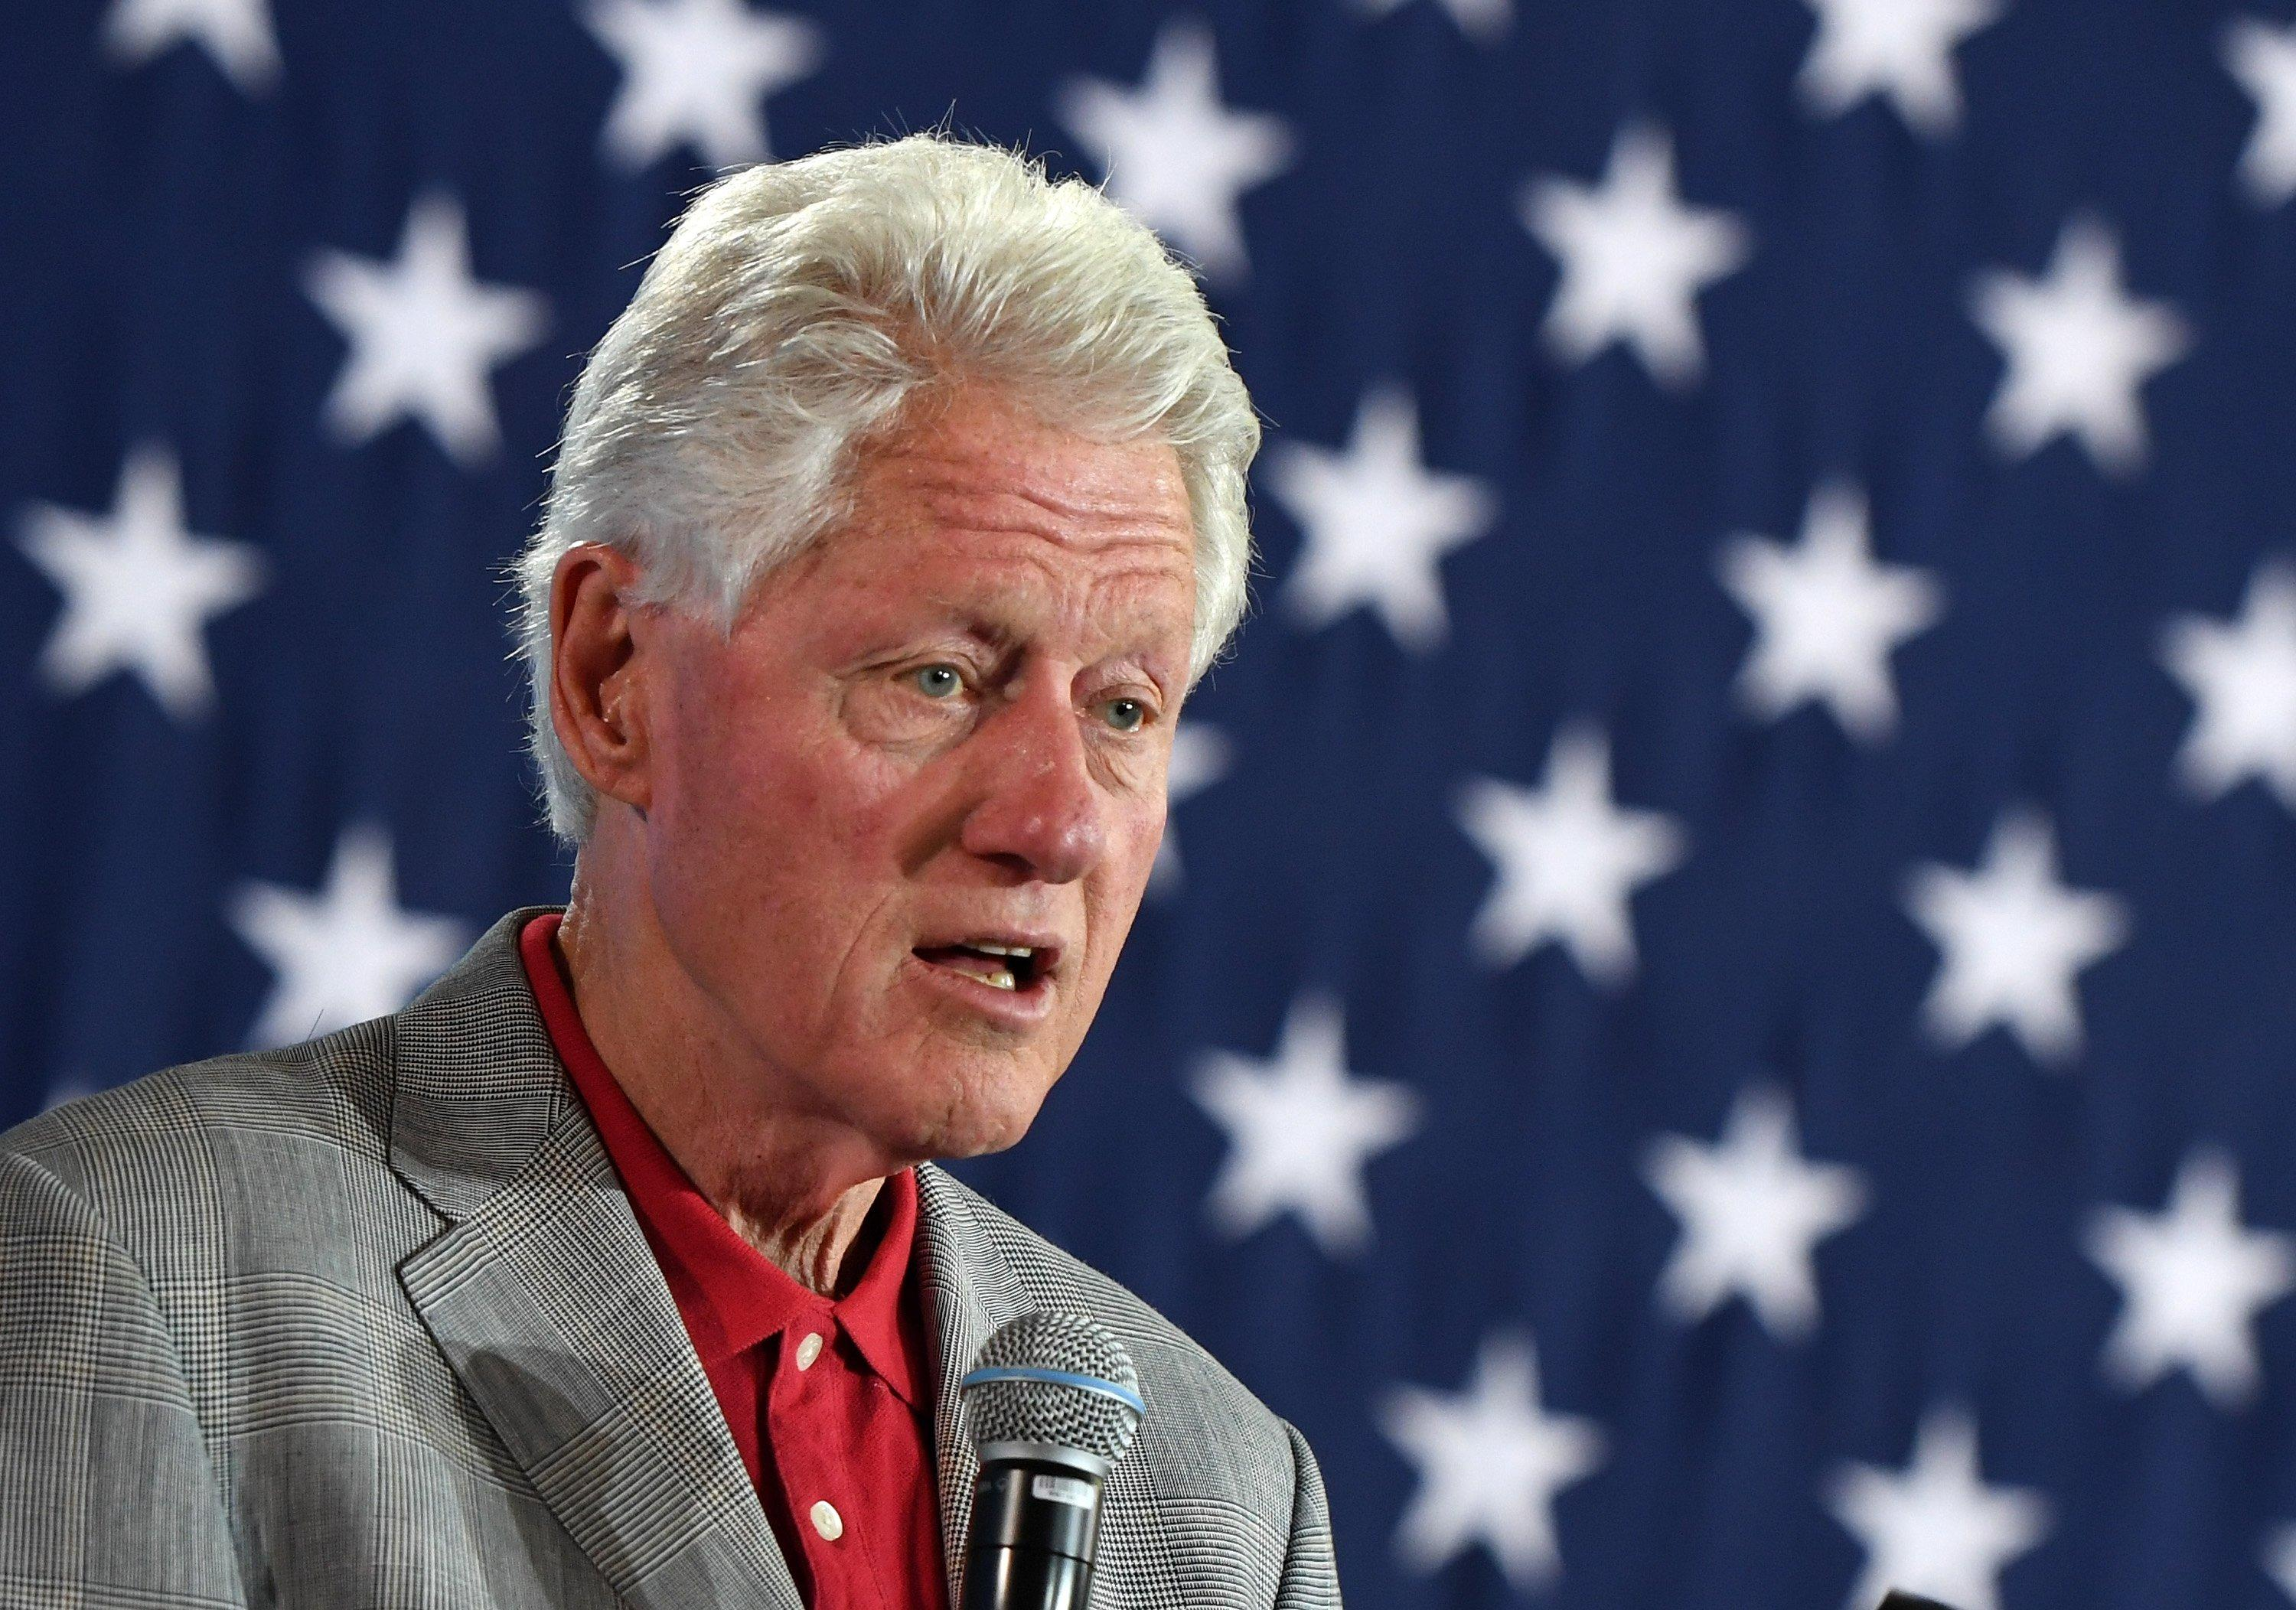 a biography of william jefferson clinton and his presidency As part of the american presidents series edited by arthur m schlesinger jr, who died in 2007, and sean wilentz, tomasky drew the assignment of squeezing the life and times of william jefferson.